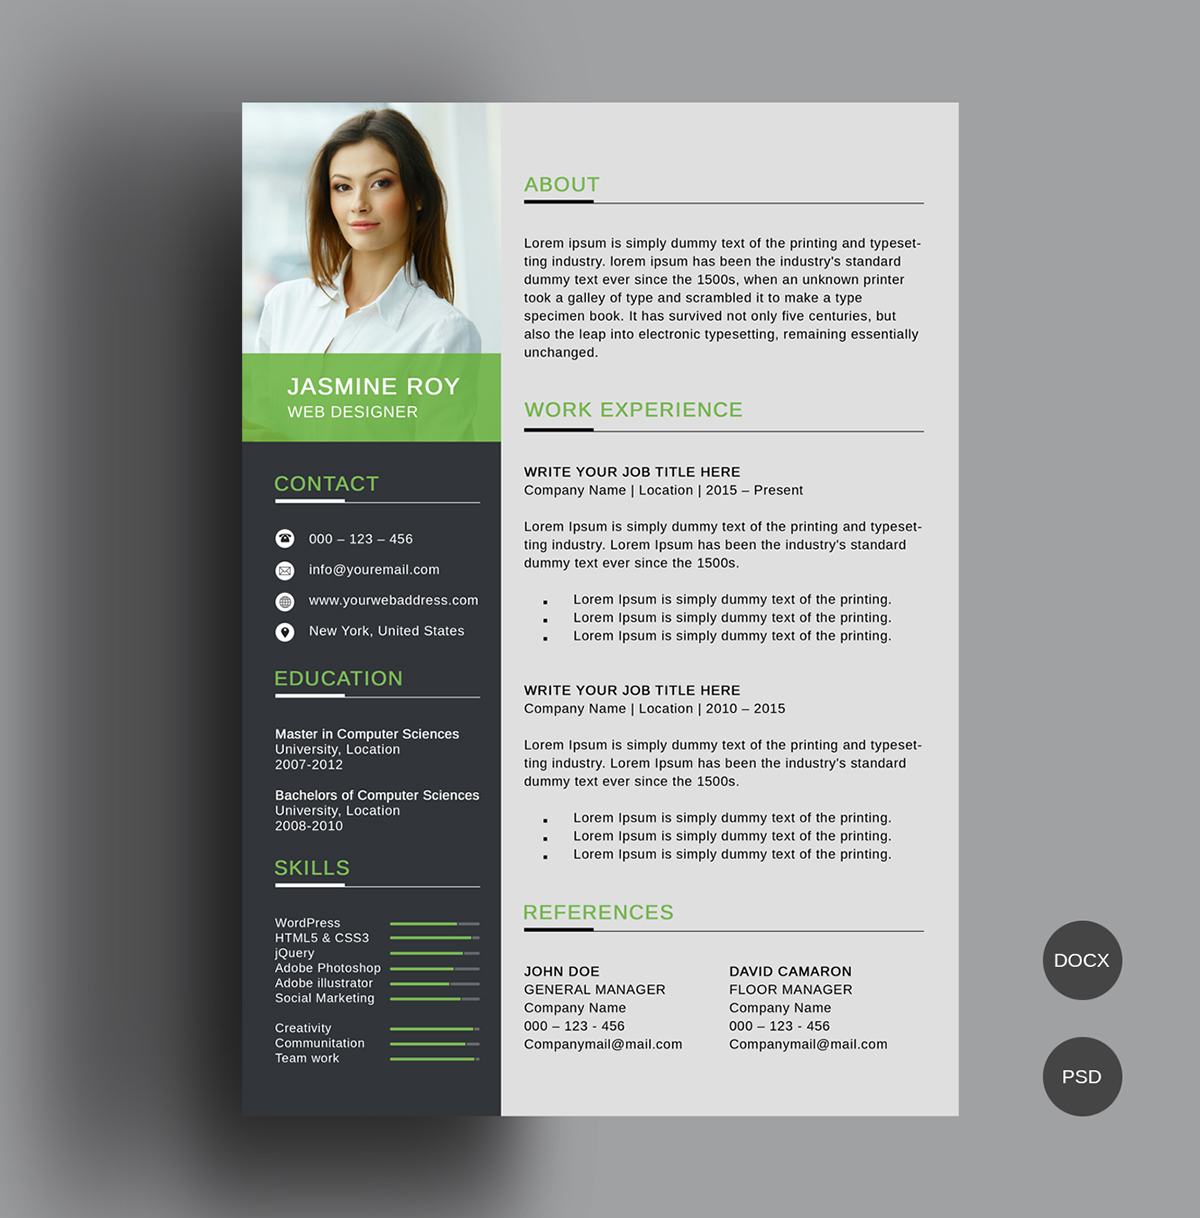 Free Resume Template C7a89962124065 5a859e79780dd free resume template|wikiresume.com